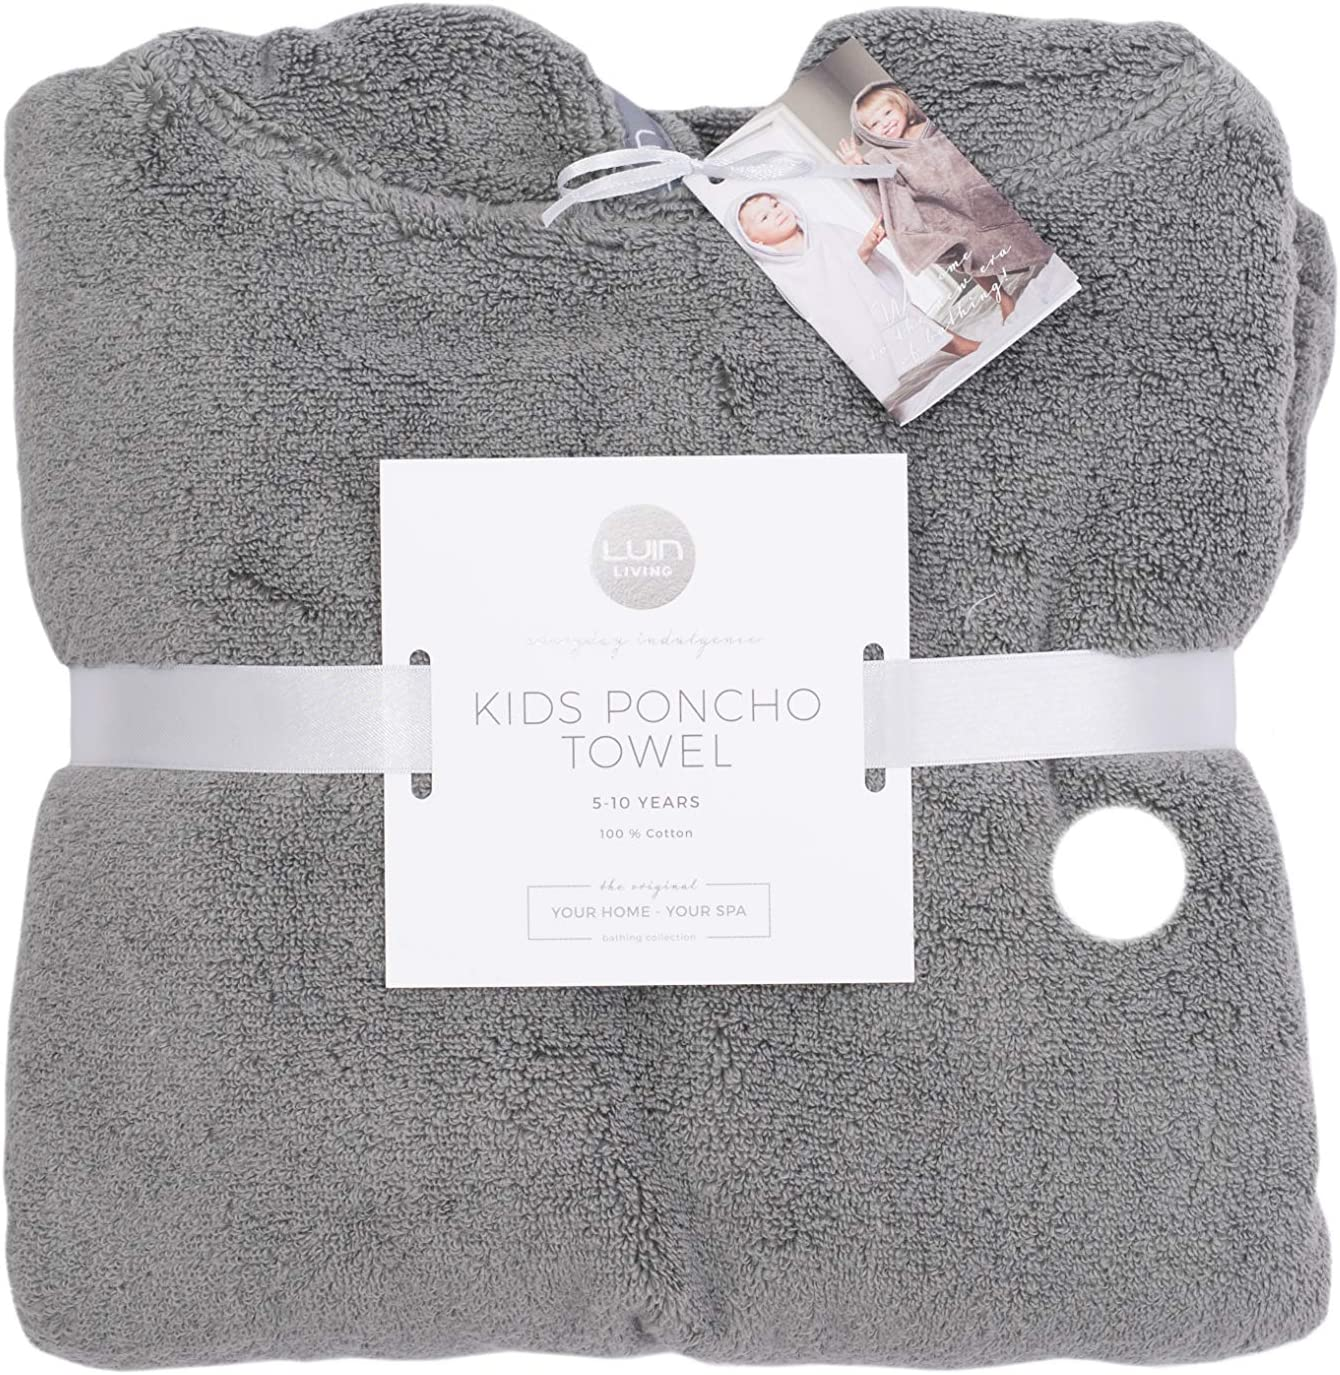 Granite 1-5 yrs Luin Living Luxury Soft Poncho Towel for Girls and Boys